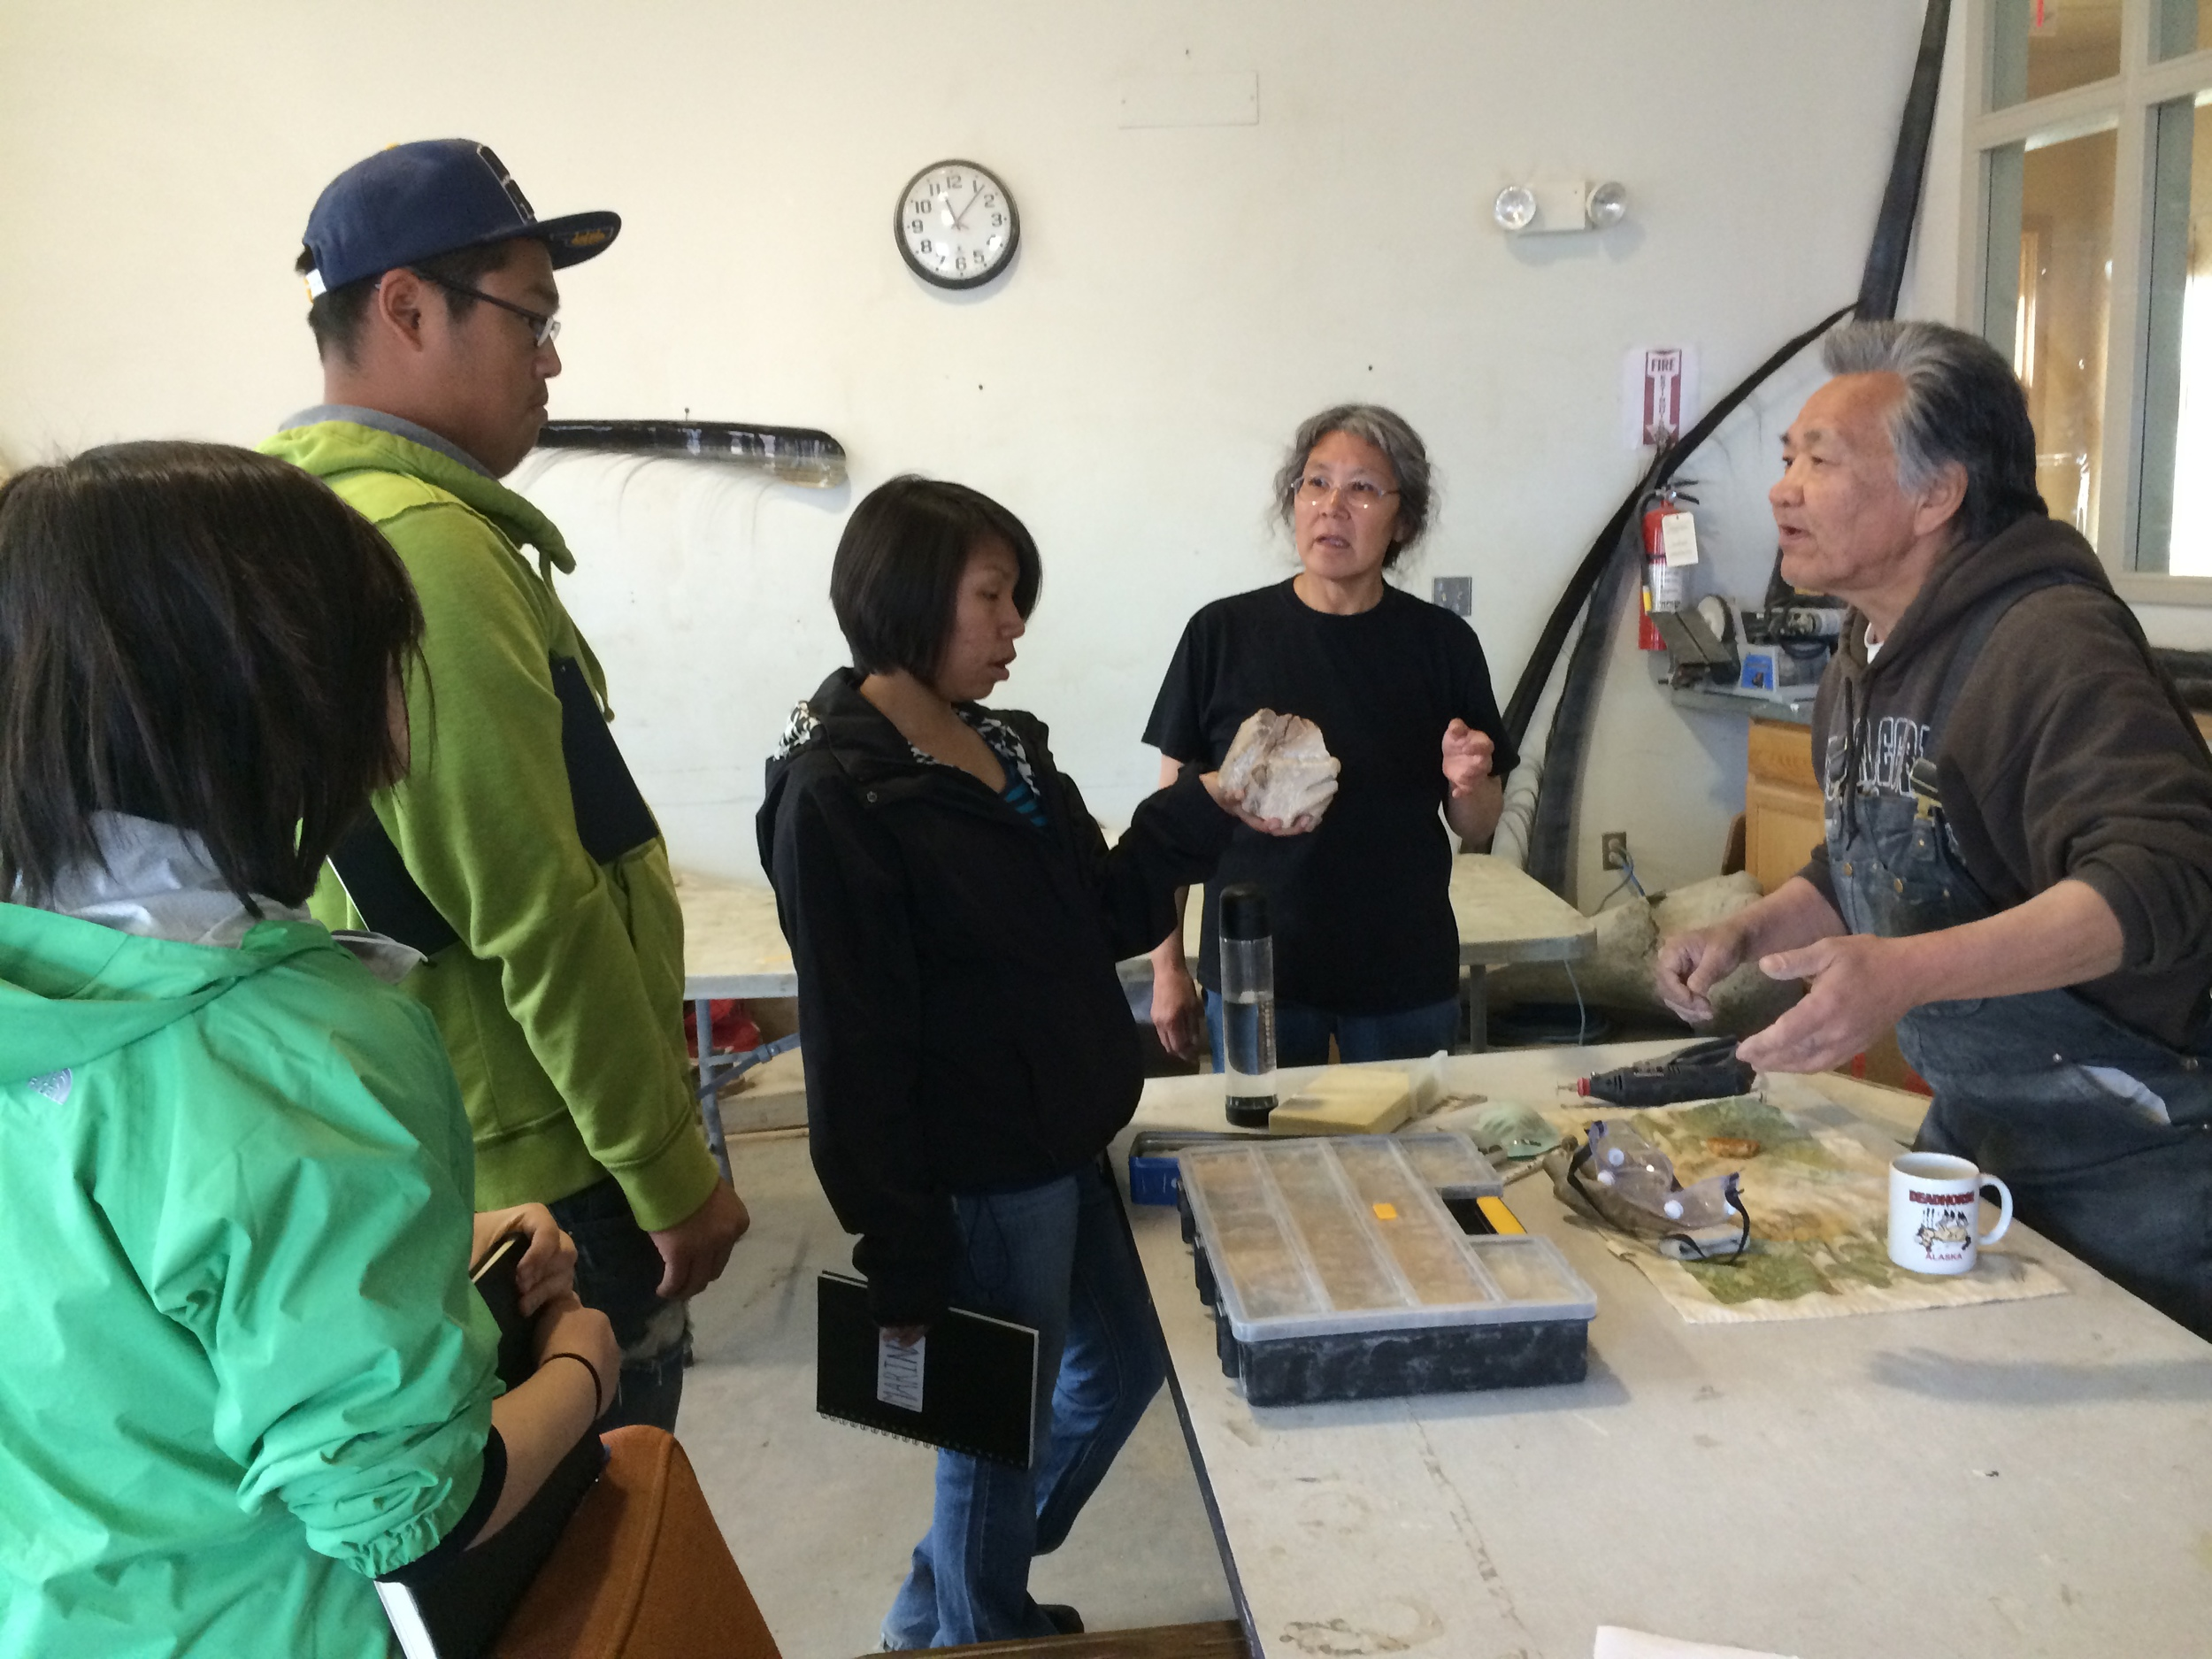 Kirsten, Mike O., and Marina talk with our guide and an artist about his craft.